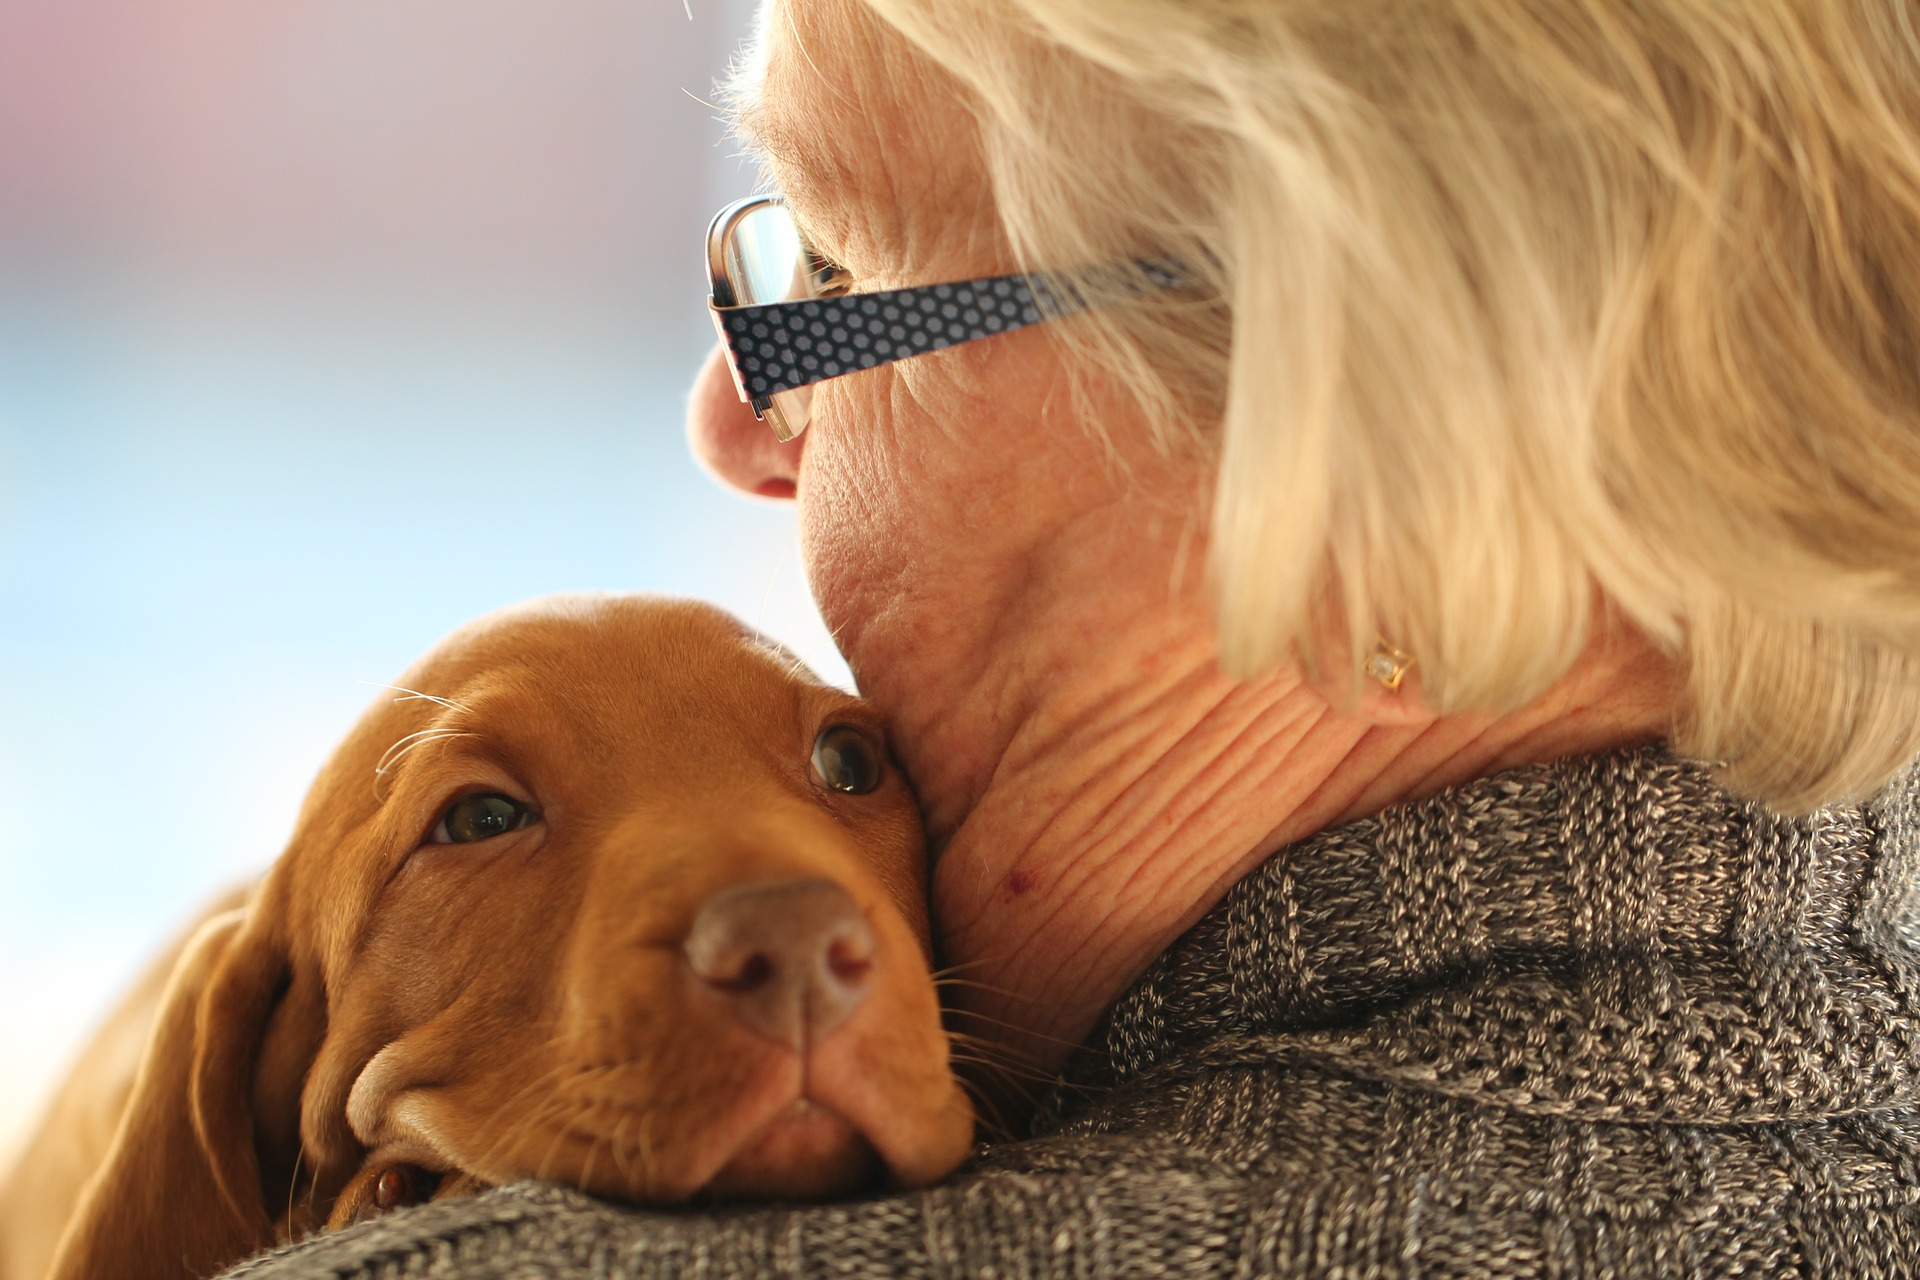 Dogs and reduce stress just through their companionship